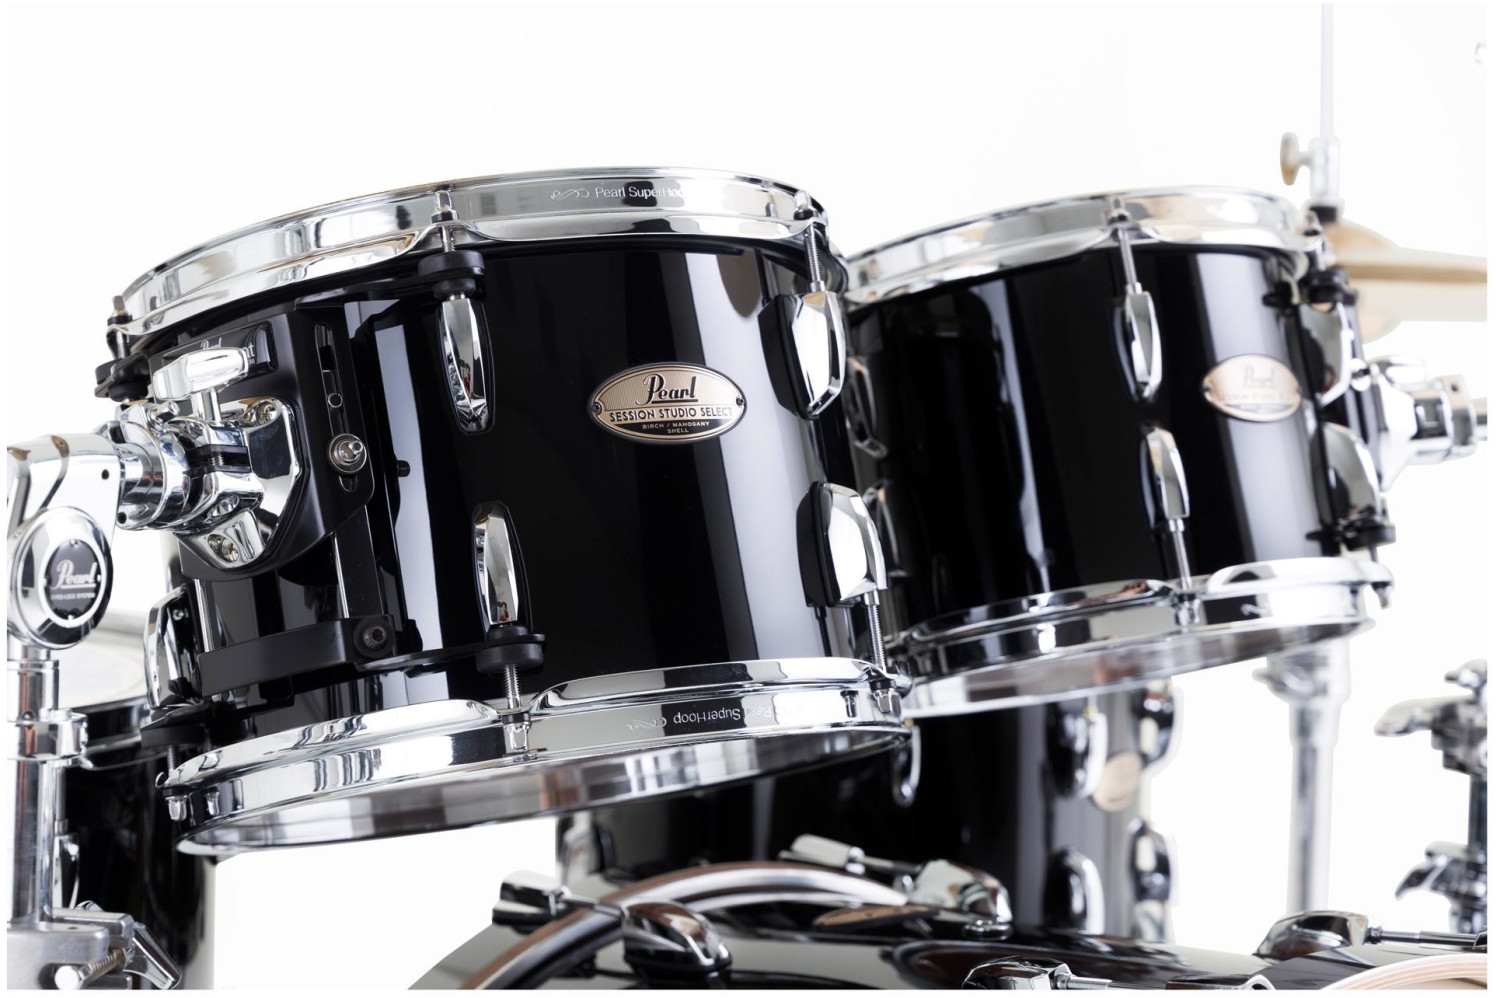 *Pearl Session Studio Select STS924XSP/C103 Piano Black*